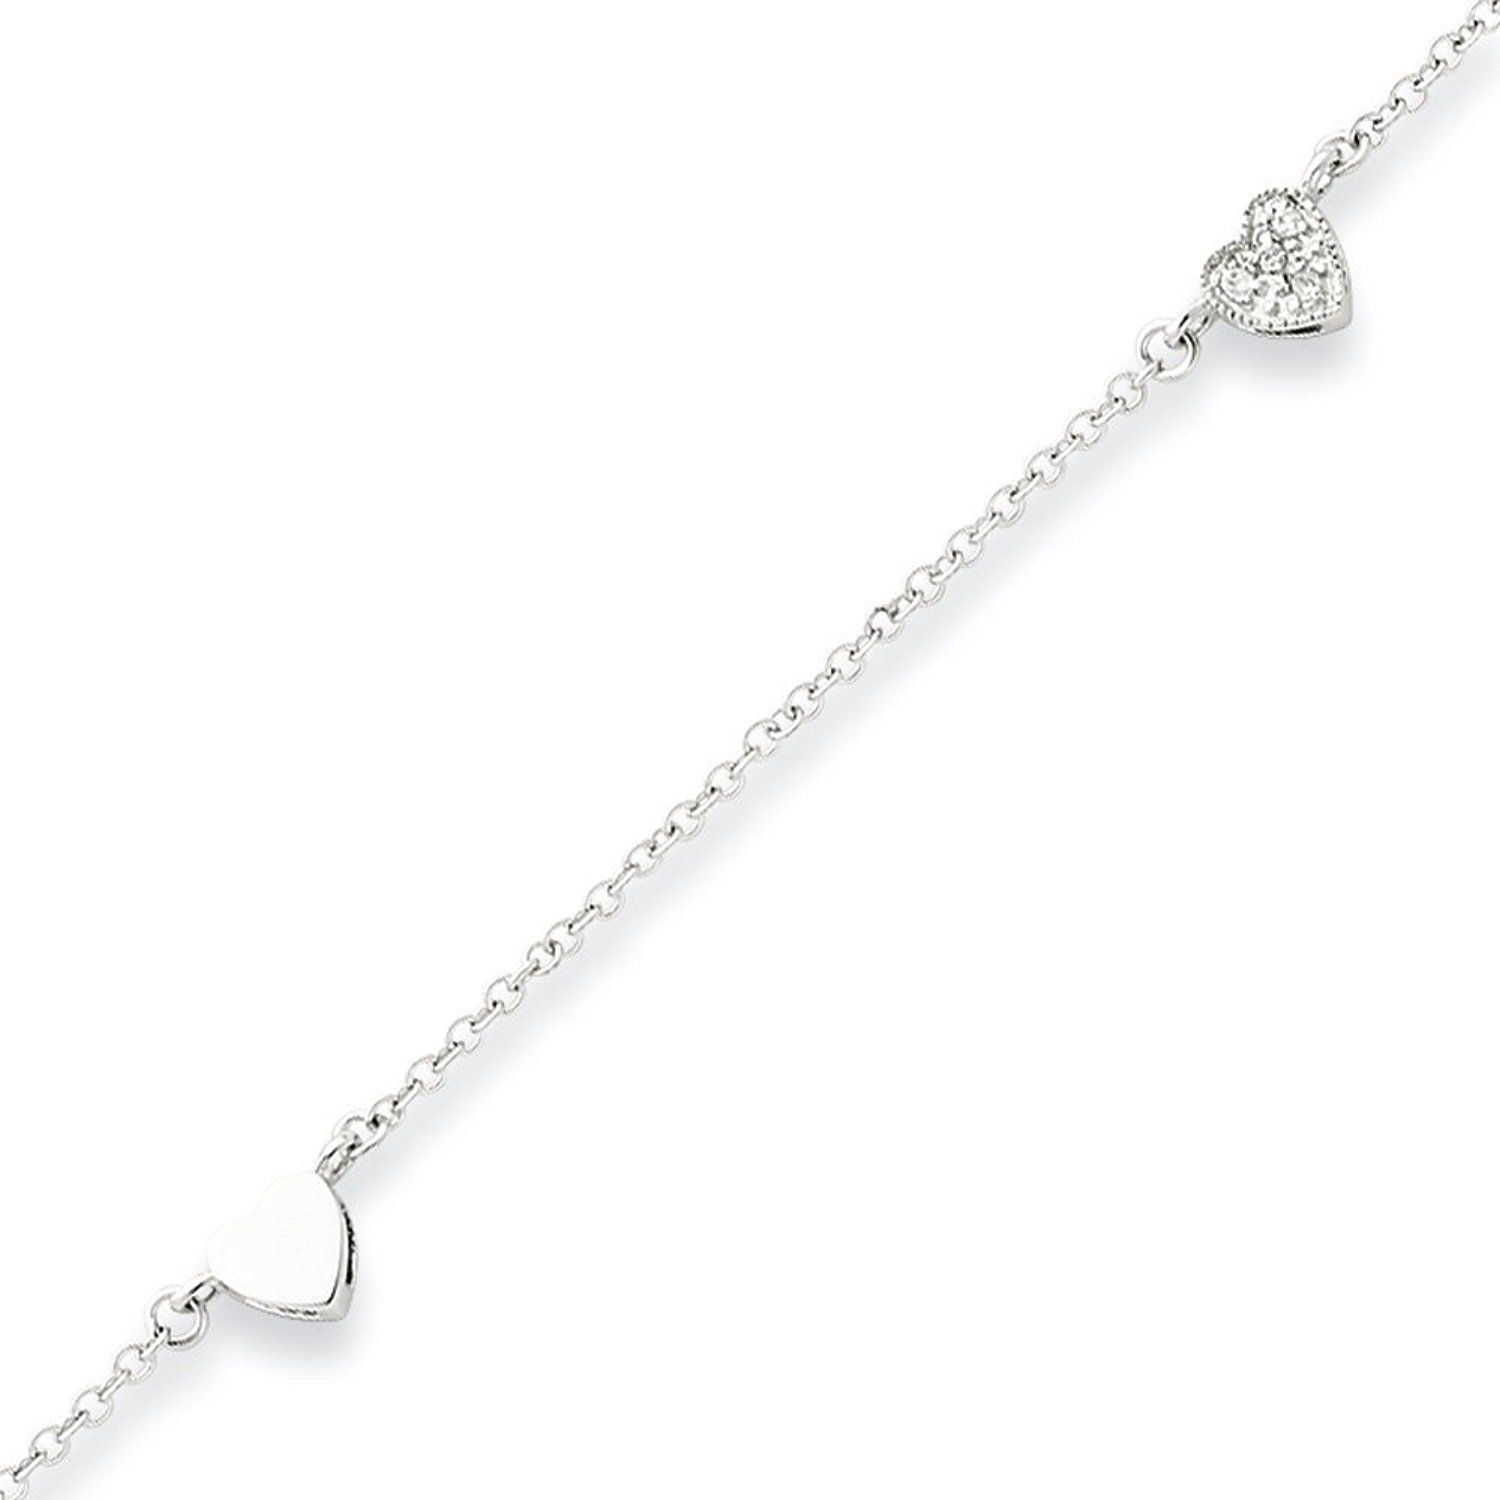 cz thailand sterling anklet a silver white link beautiful from accents round ca aeravida make details cubic crafted cute statement features products zirconia wt with anklets this